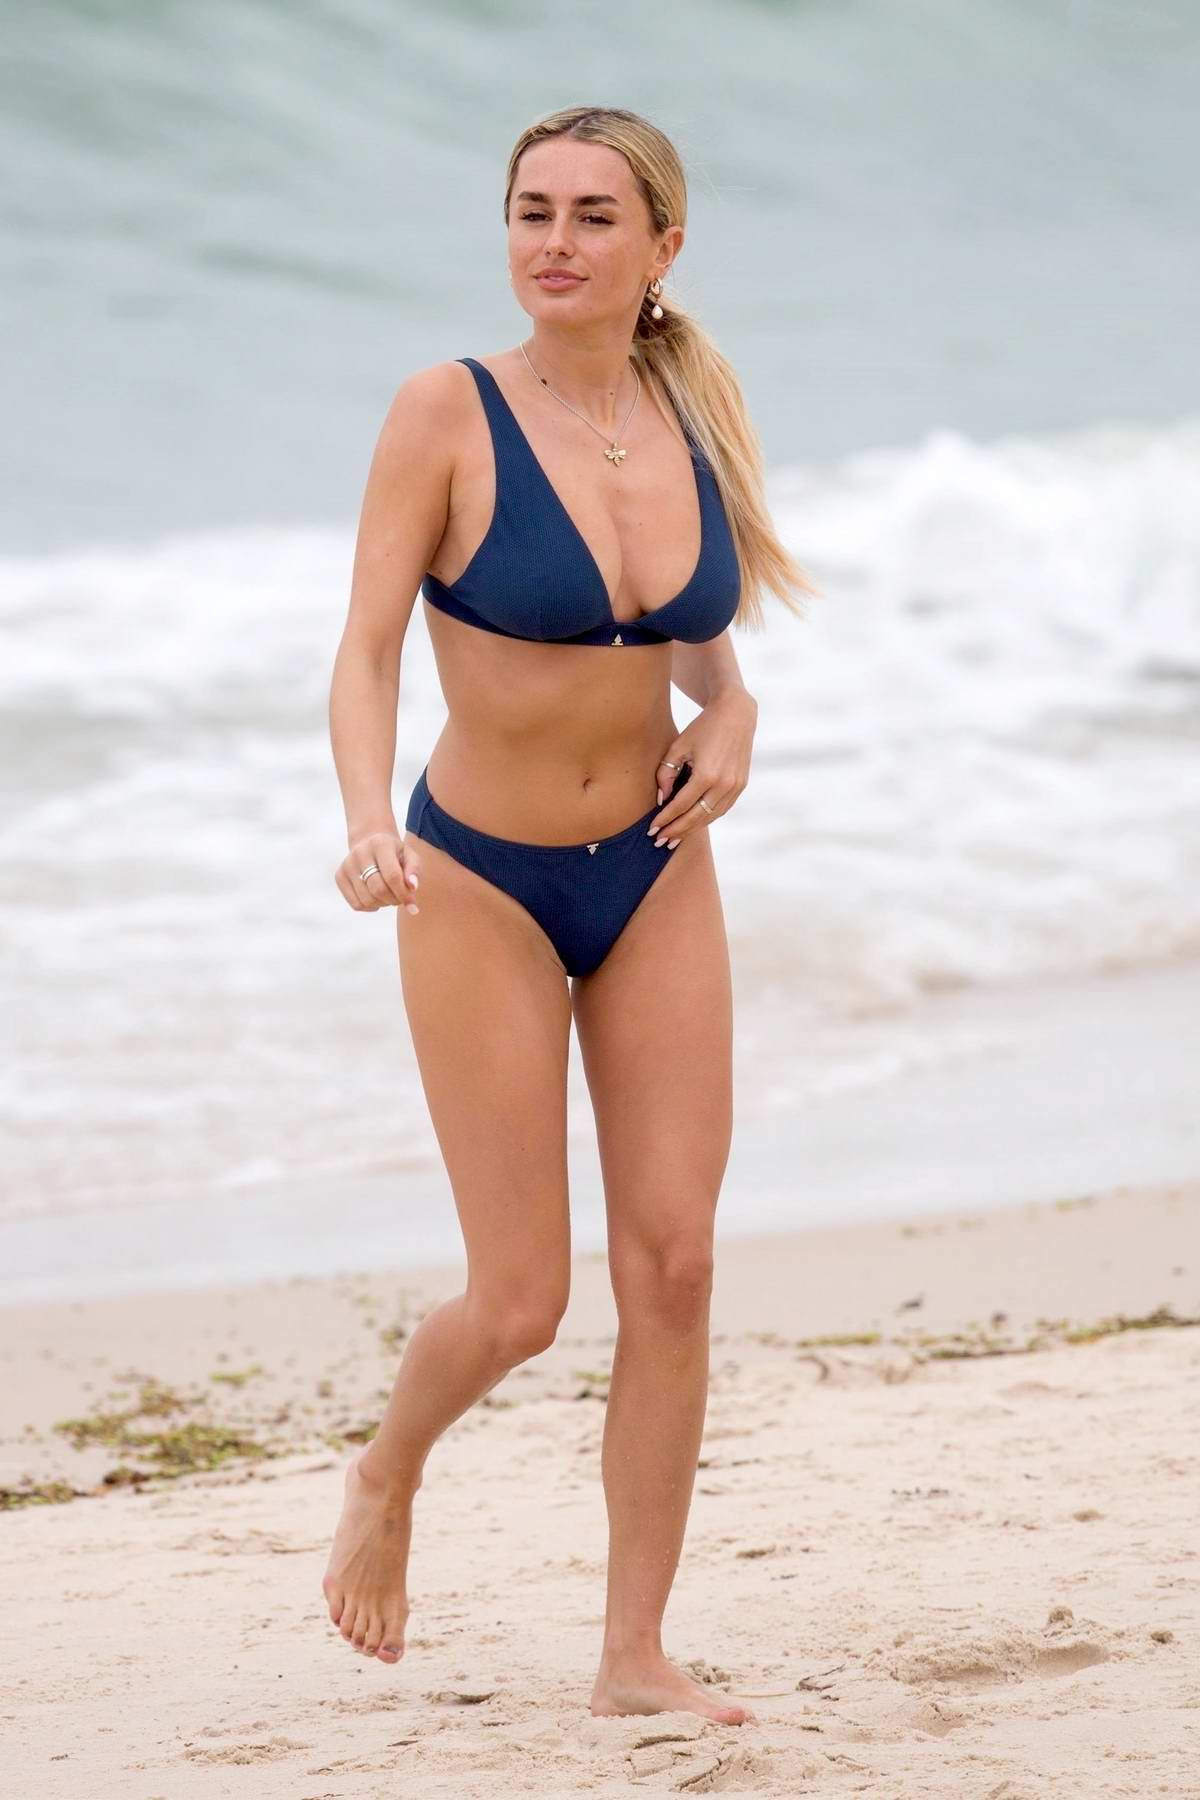 Amber Davies seen wearing a navy blue bikini at the Brighton Beach in Adelaide, Australia